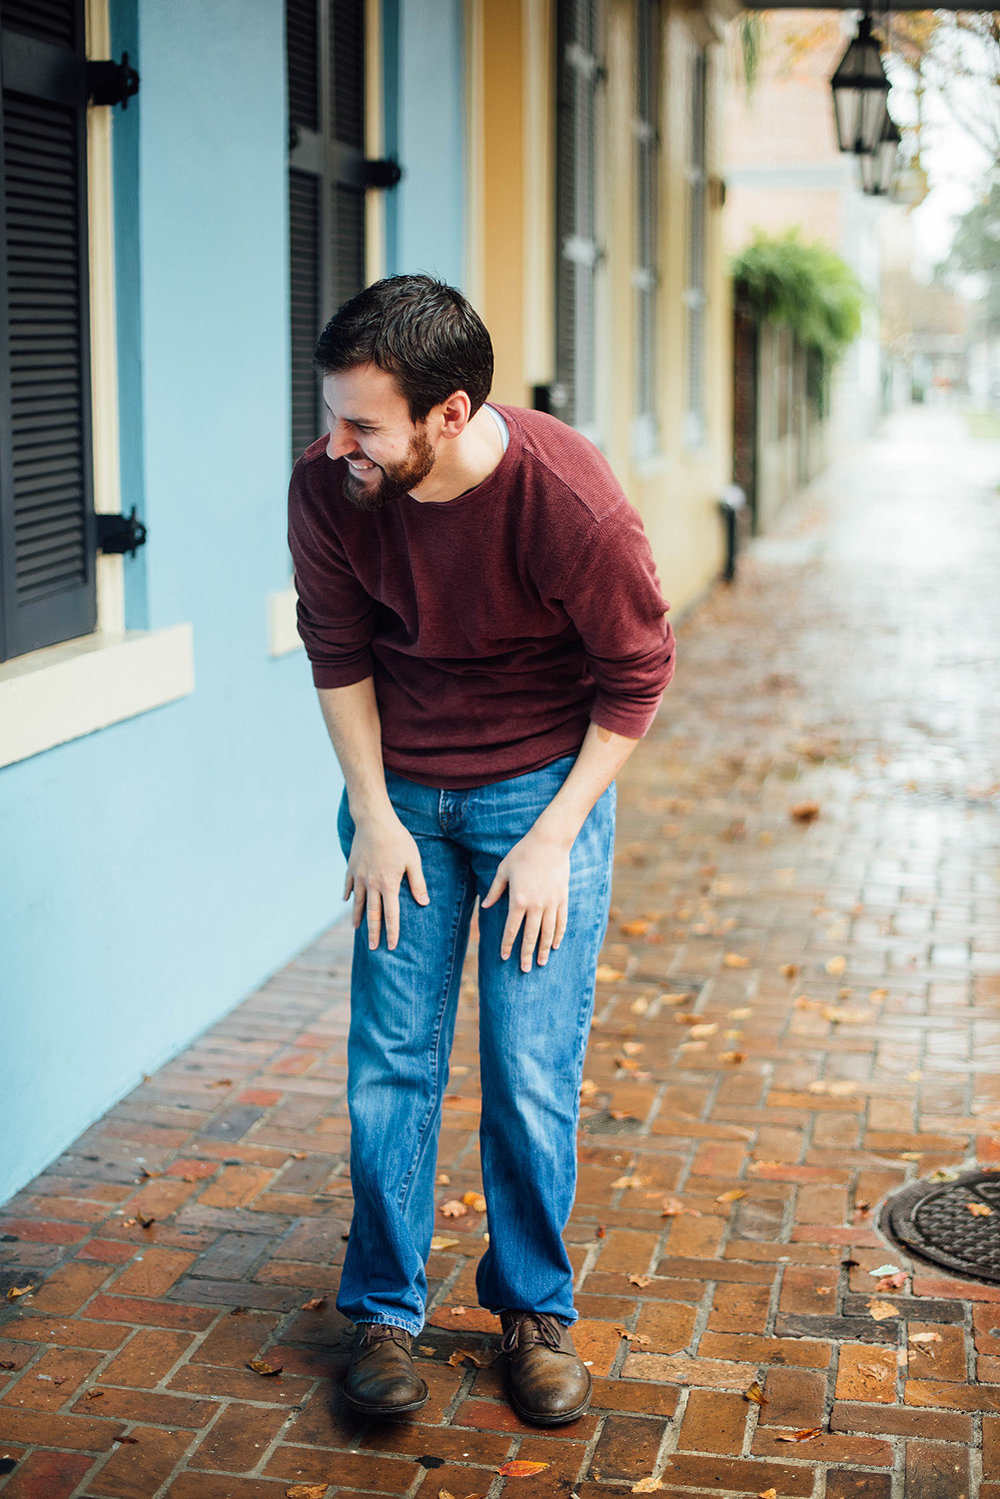 Max + Margaret-Rainy-New-Orleans-Engagement-Photos-Gabby-Chapin_PRINT_0109.jpg